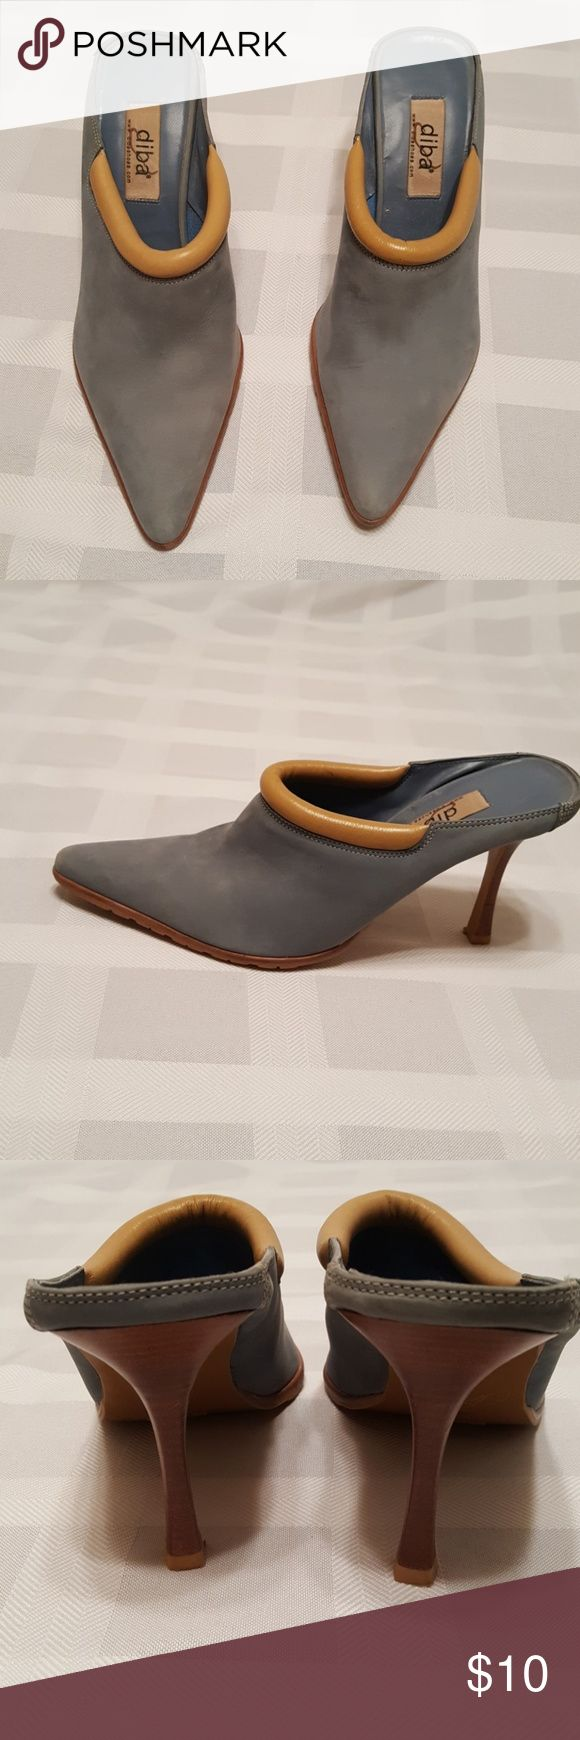 Women's mules Women's used shoes very cute. See photo for imperfections. Diba Shoes Mules & Clogs